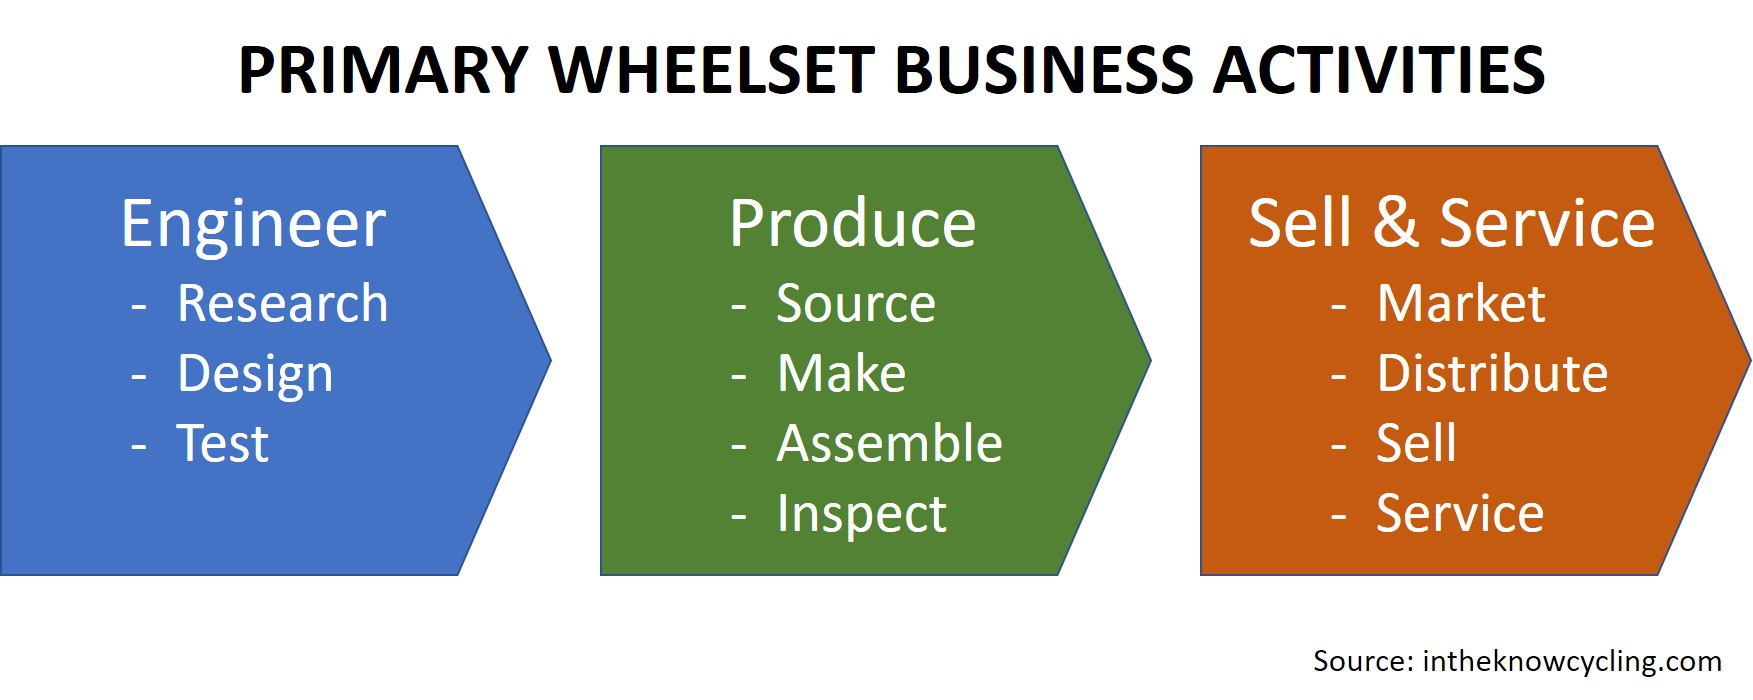 Primary Wheelset Business Activities